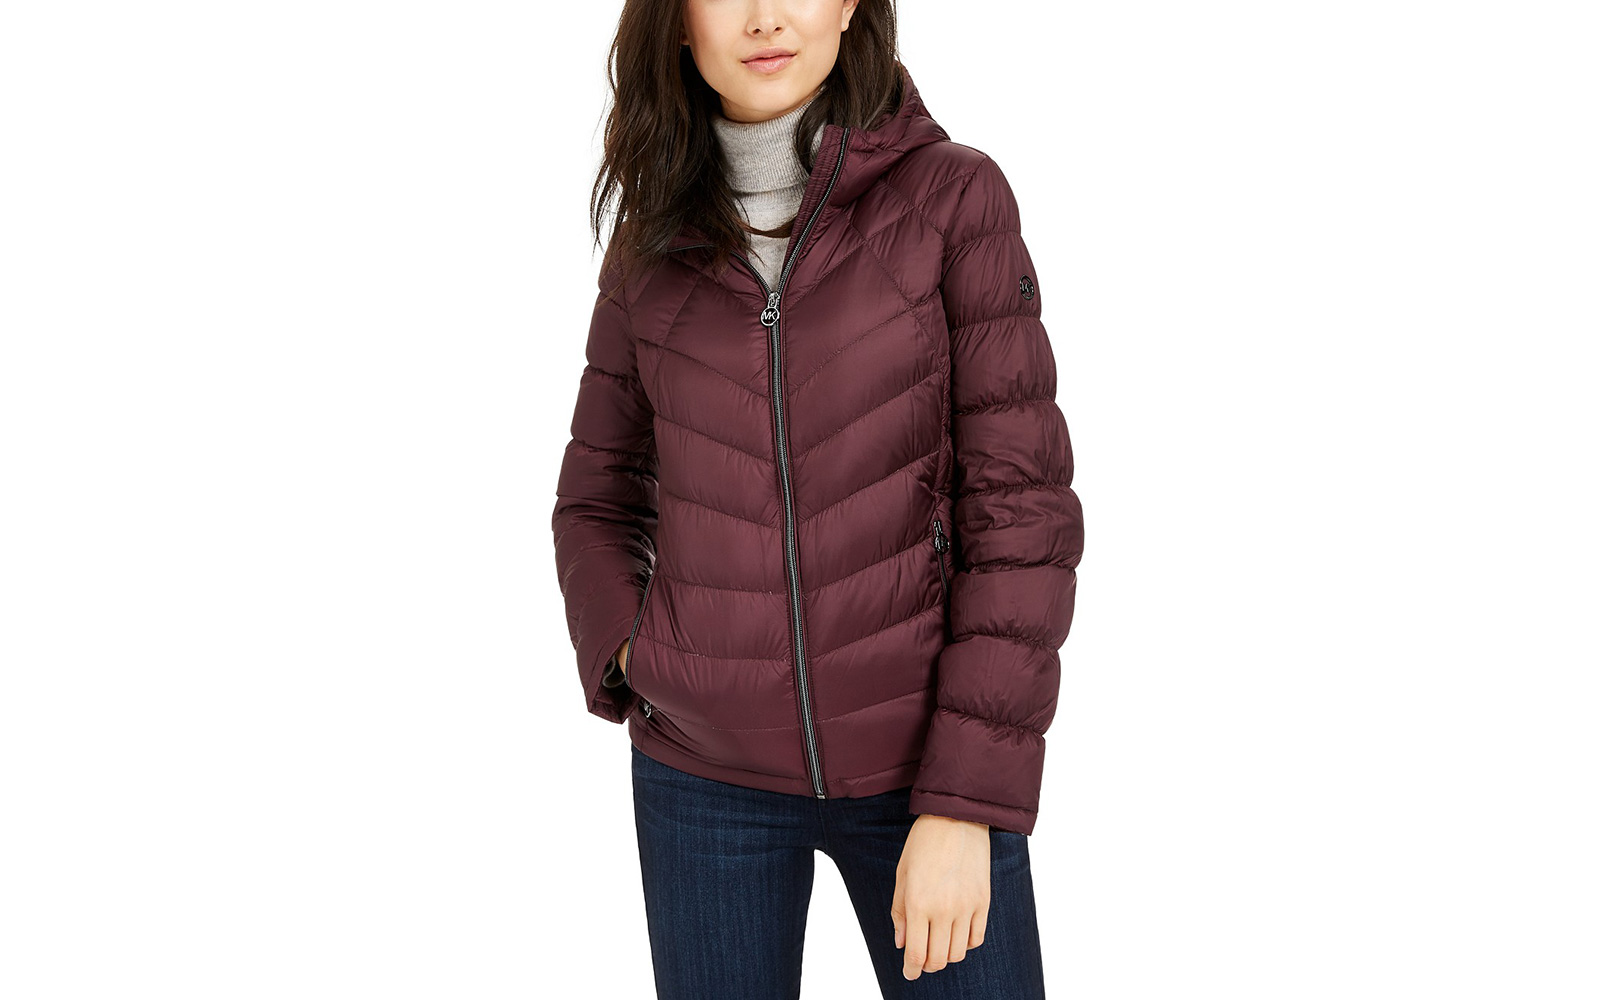 Michael Kors Packable Hooded Down Puffer Coat